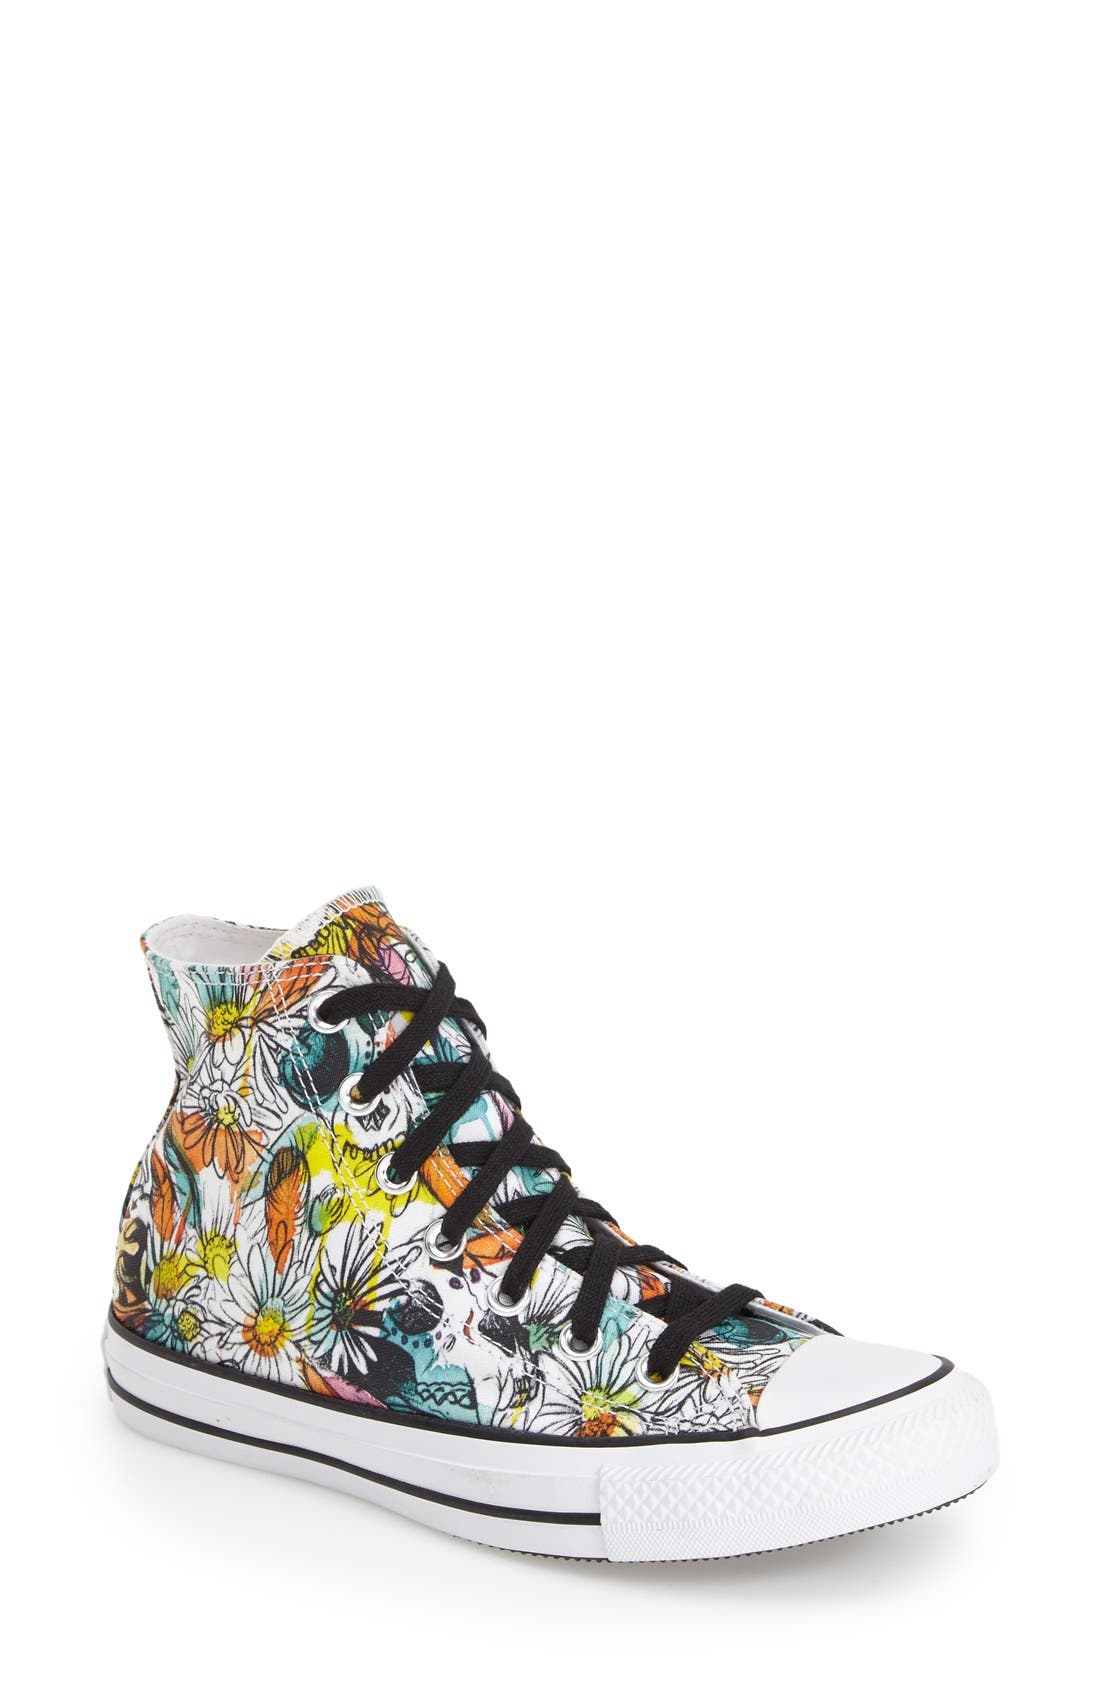 Main Image - Converse Chuck Taylor® All Star® 'Floral' High Top Sneaker (Women)